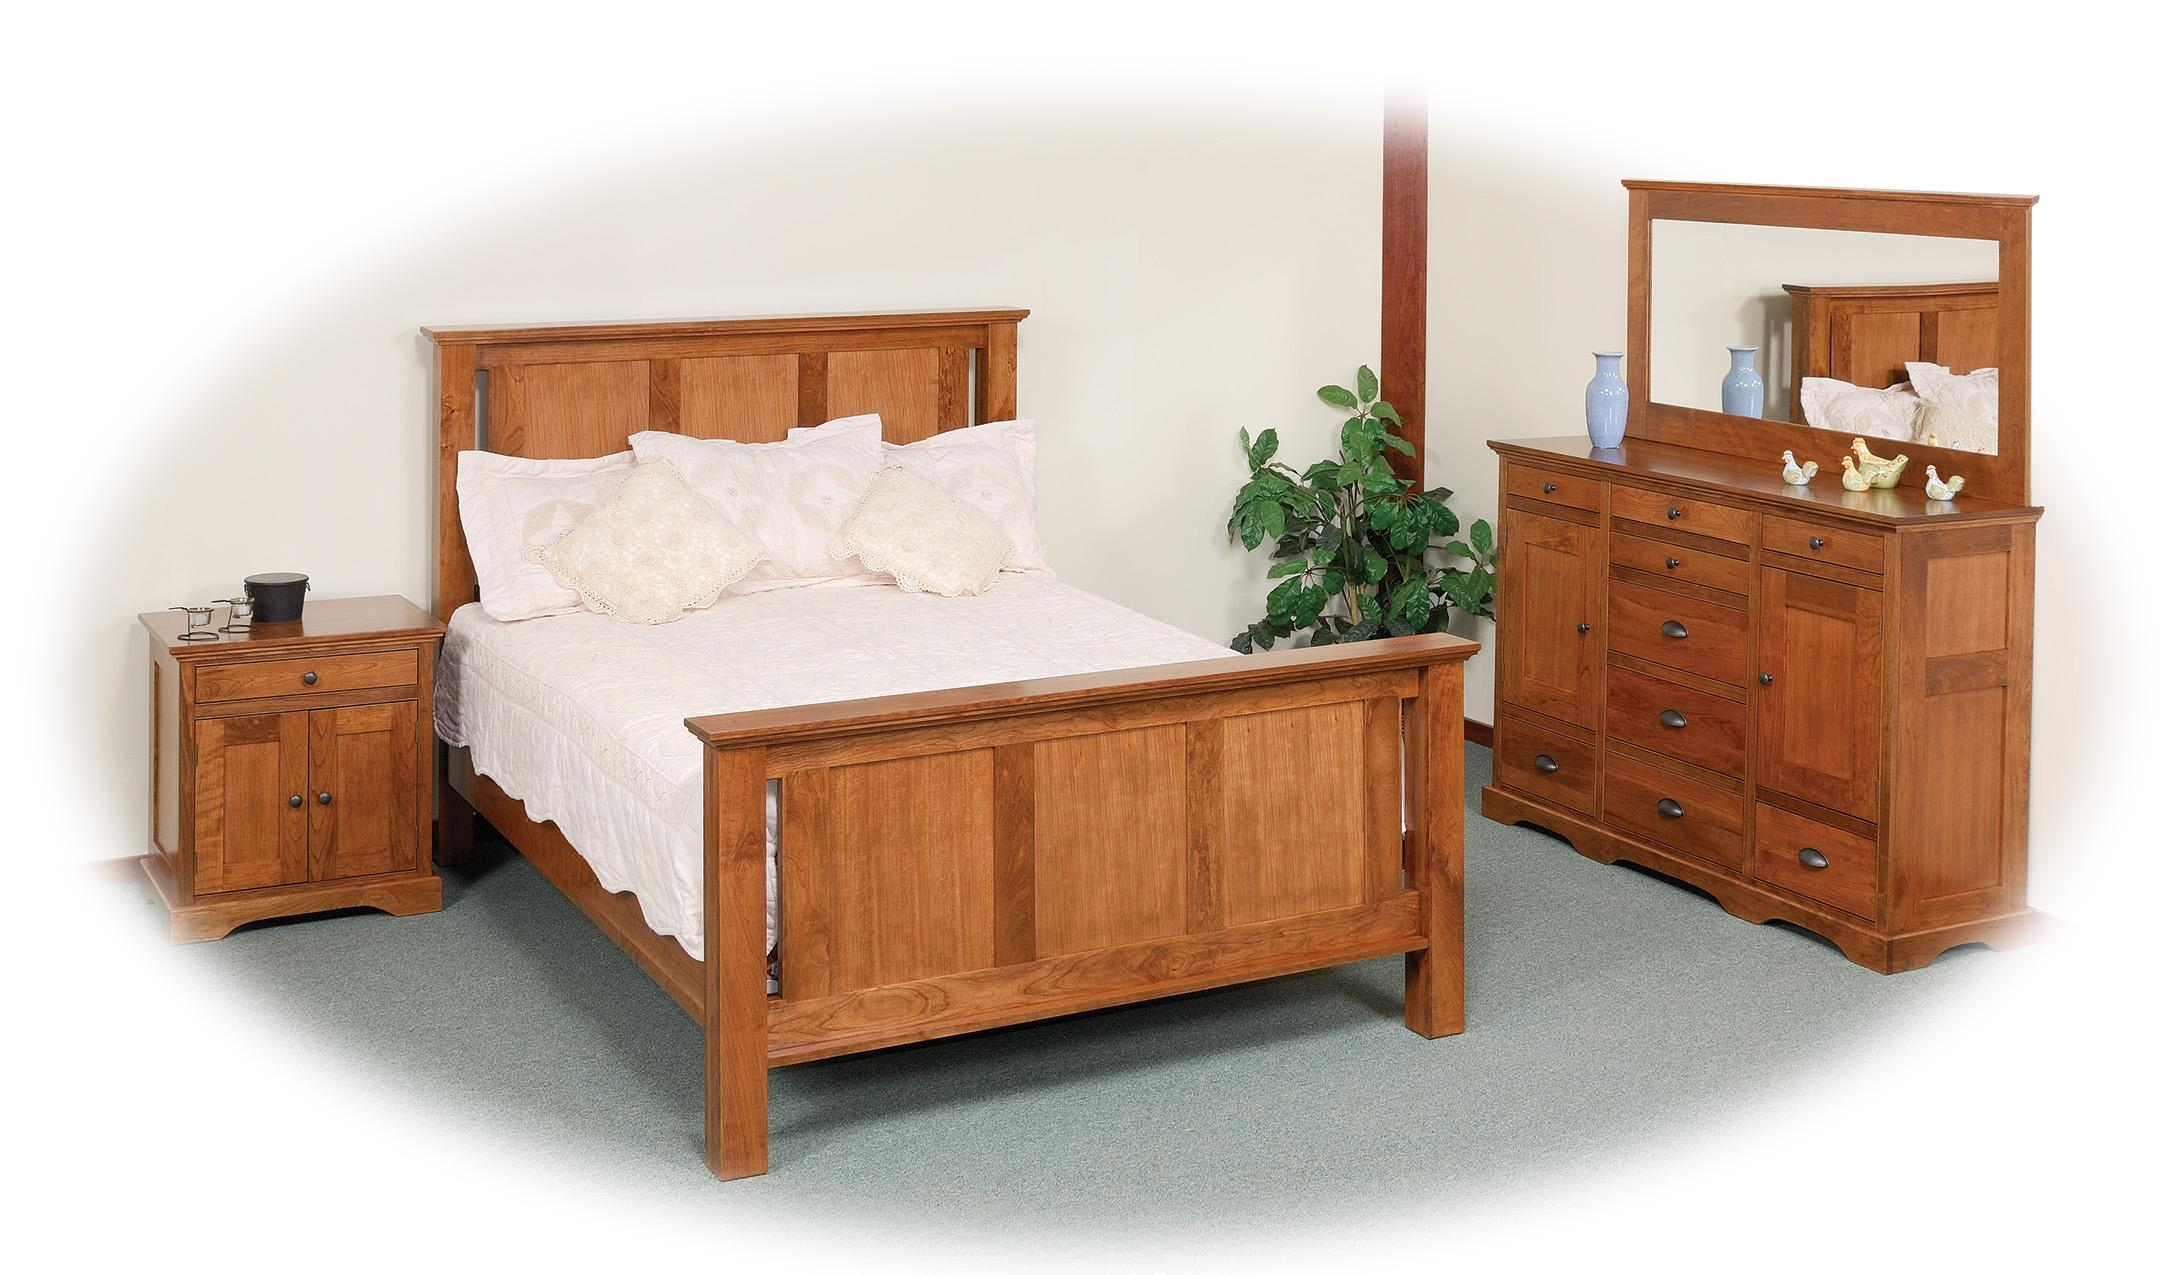 Elegance Queen Bedroom Group by Daniel's Amish at Prime Brothers Furniture